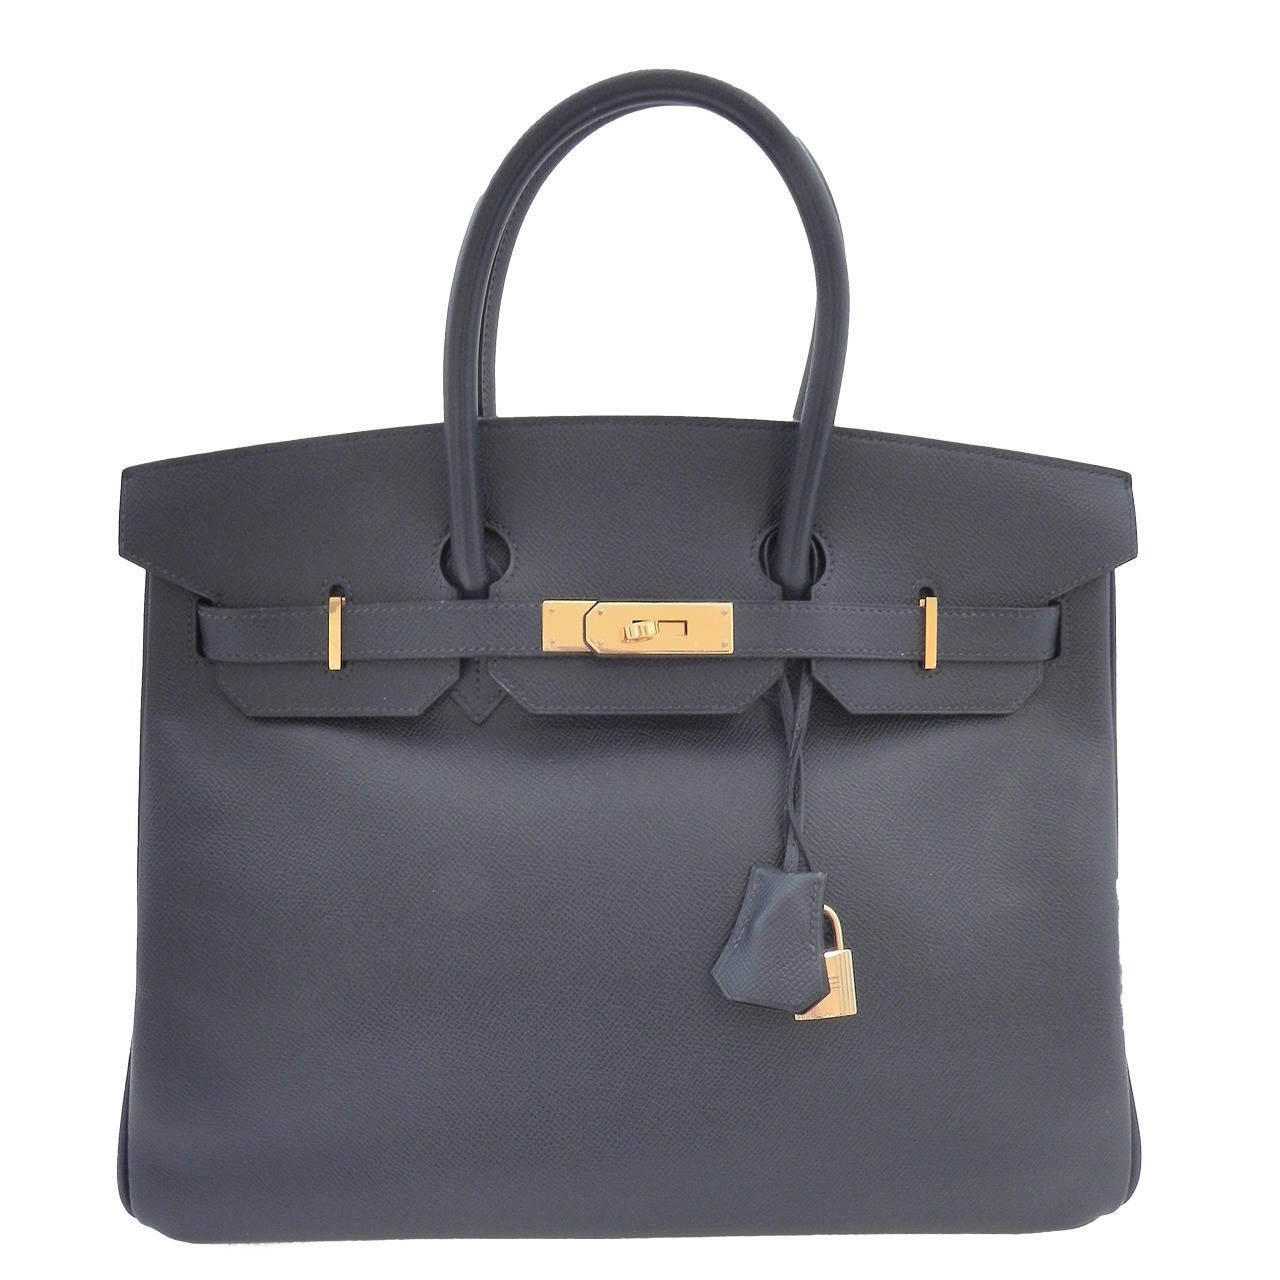 Hermes Dark Navy Blue Birkin 35 cm bag